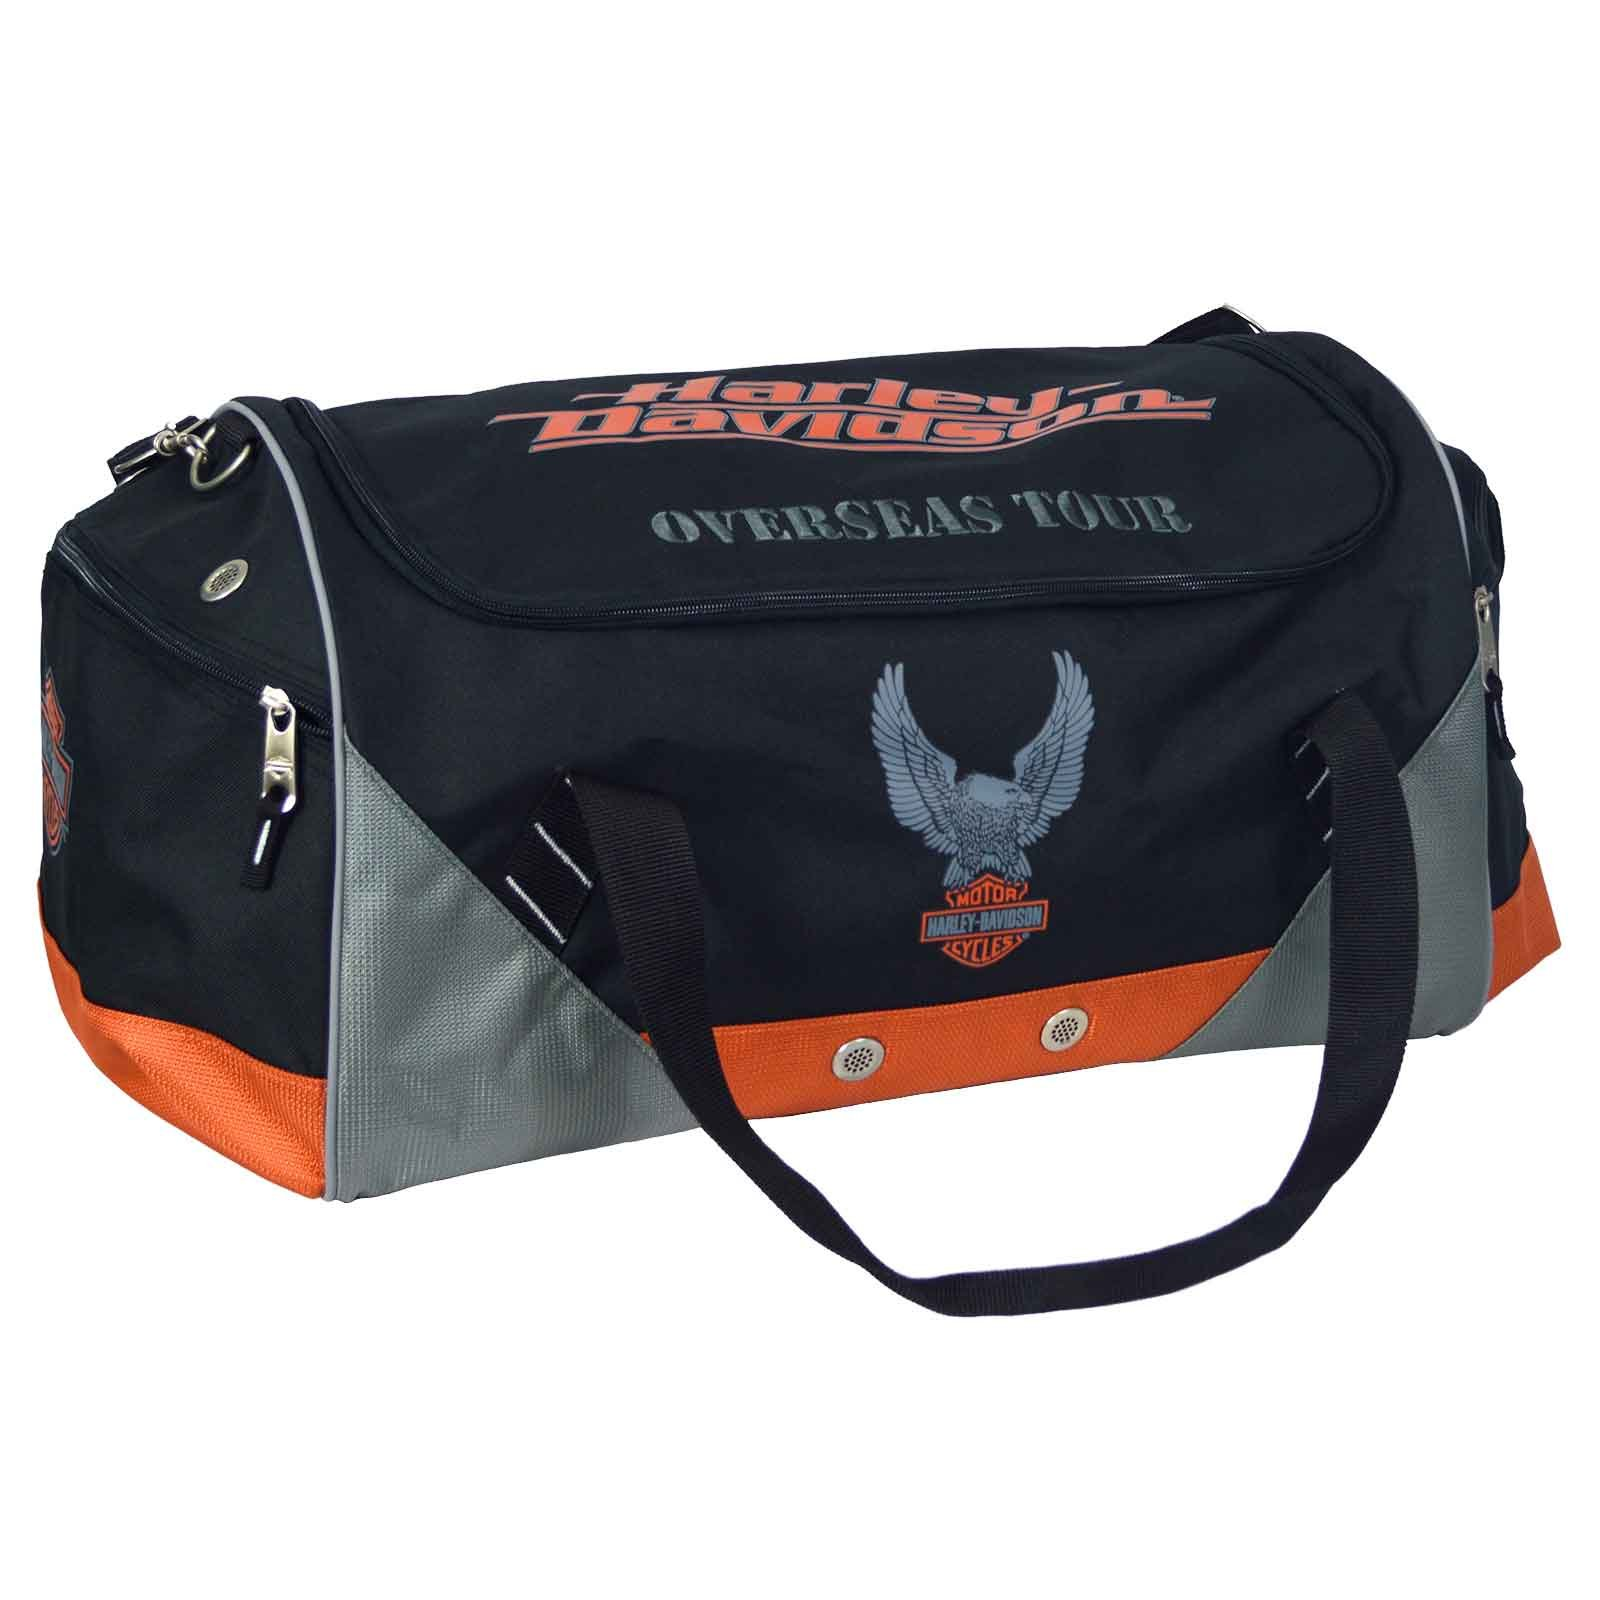 Harley-Davidson Military Sports and Travel Duffel Bag - Overseas Tour